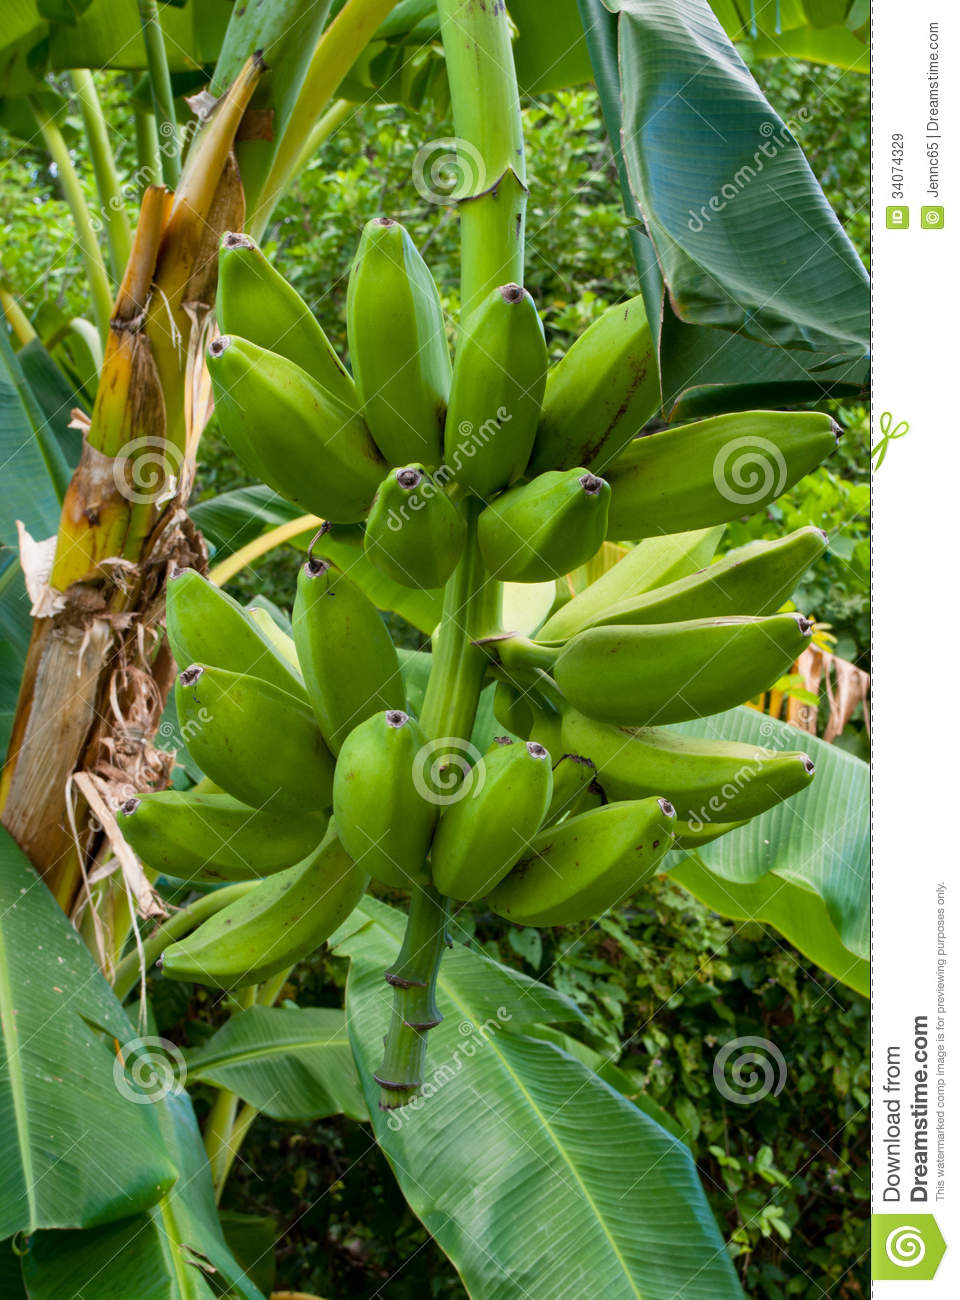 Banana Cultivation Business | Information Guide